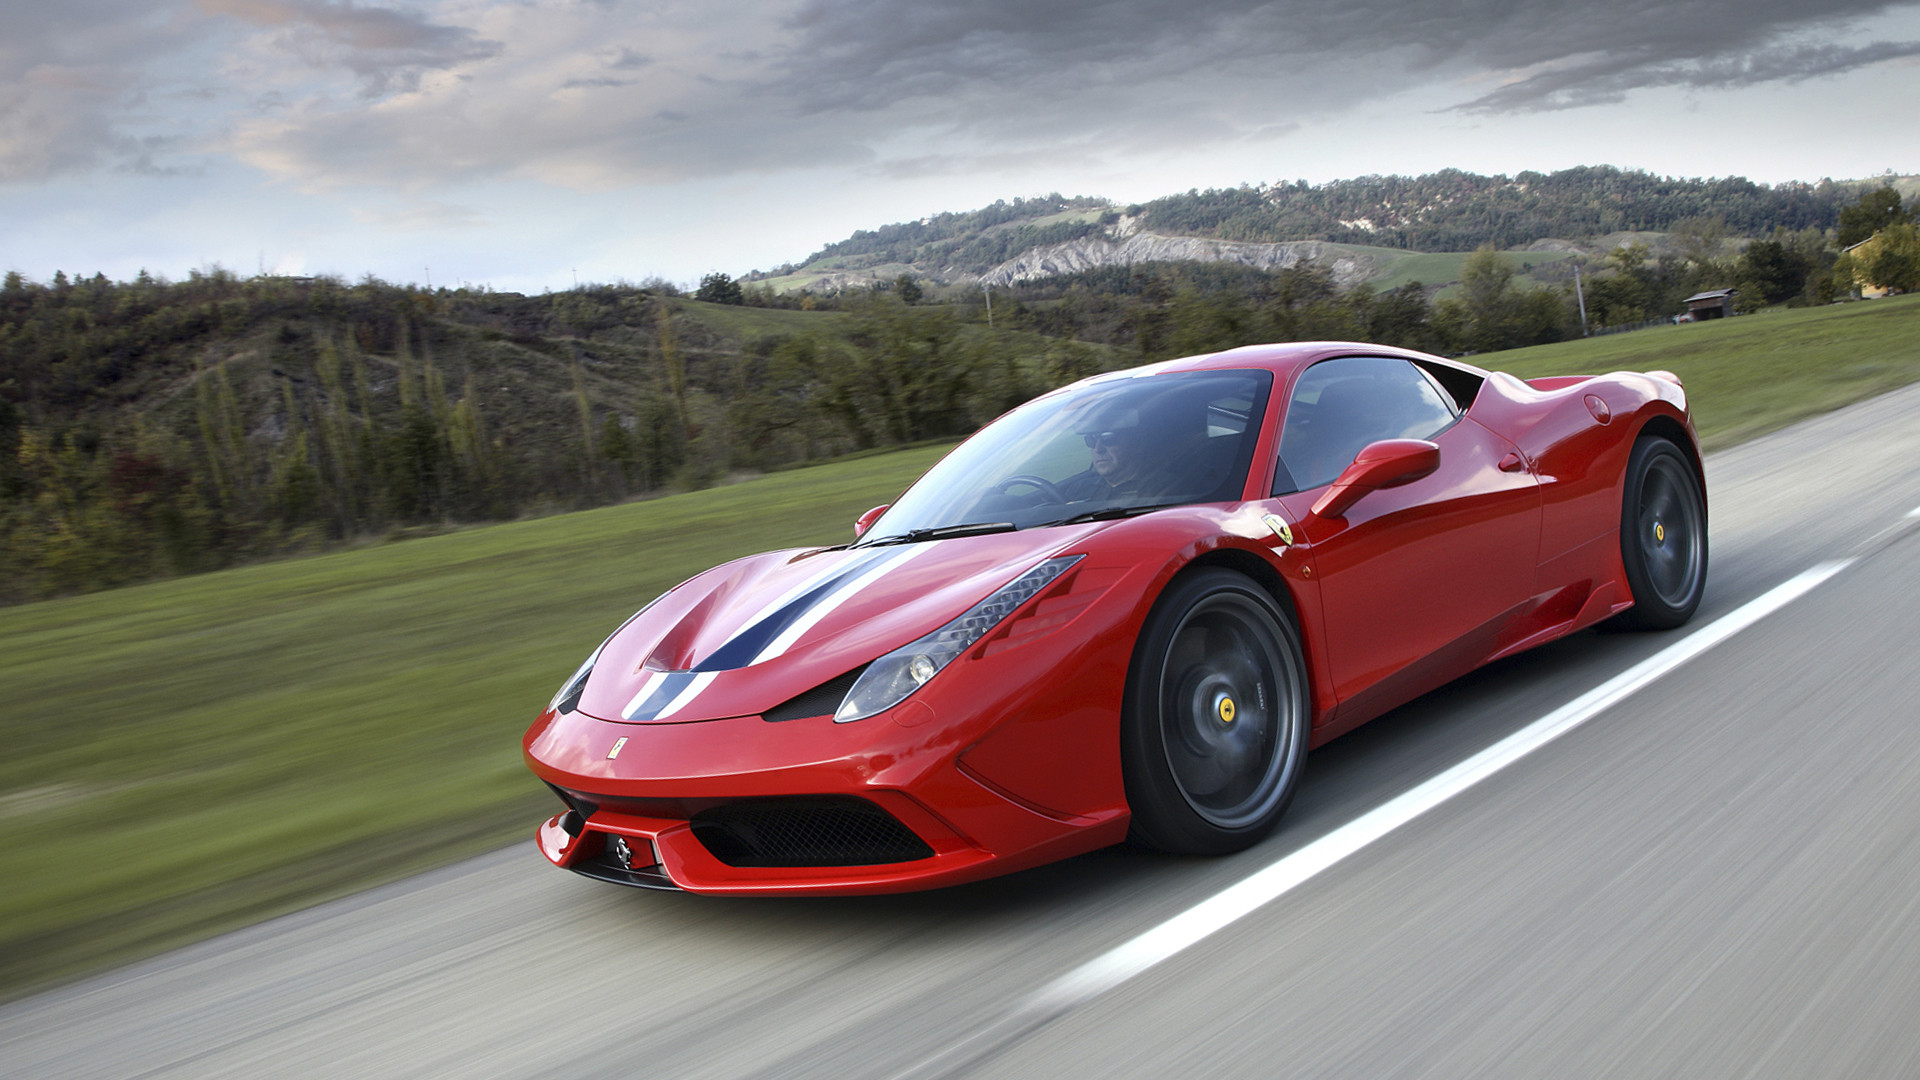 Ferrari 458 Speciale Wallpapers Supercars Net